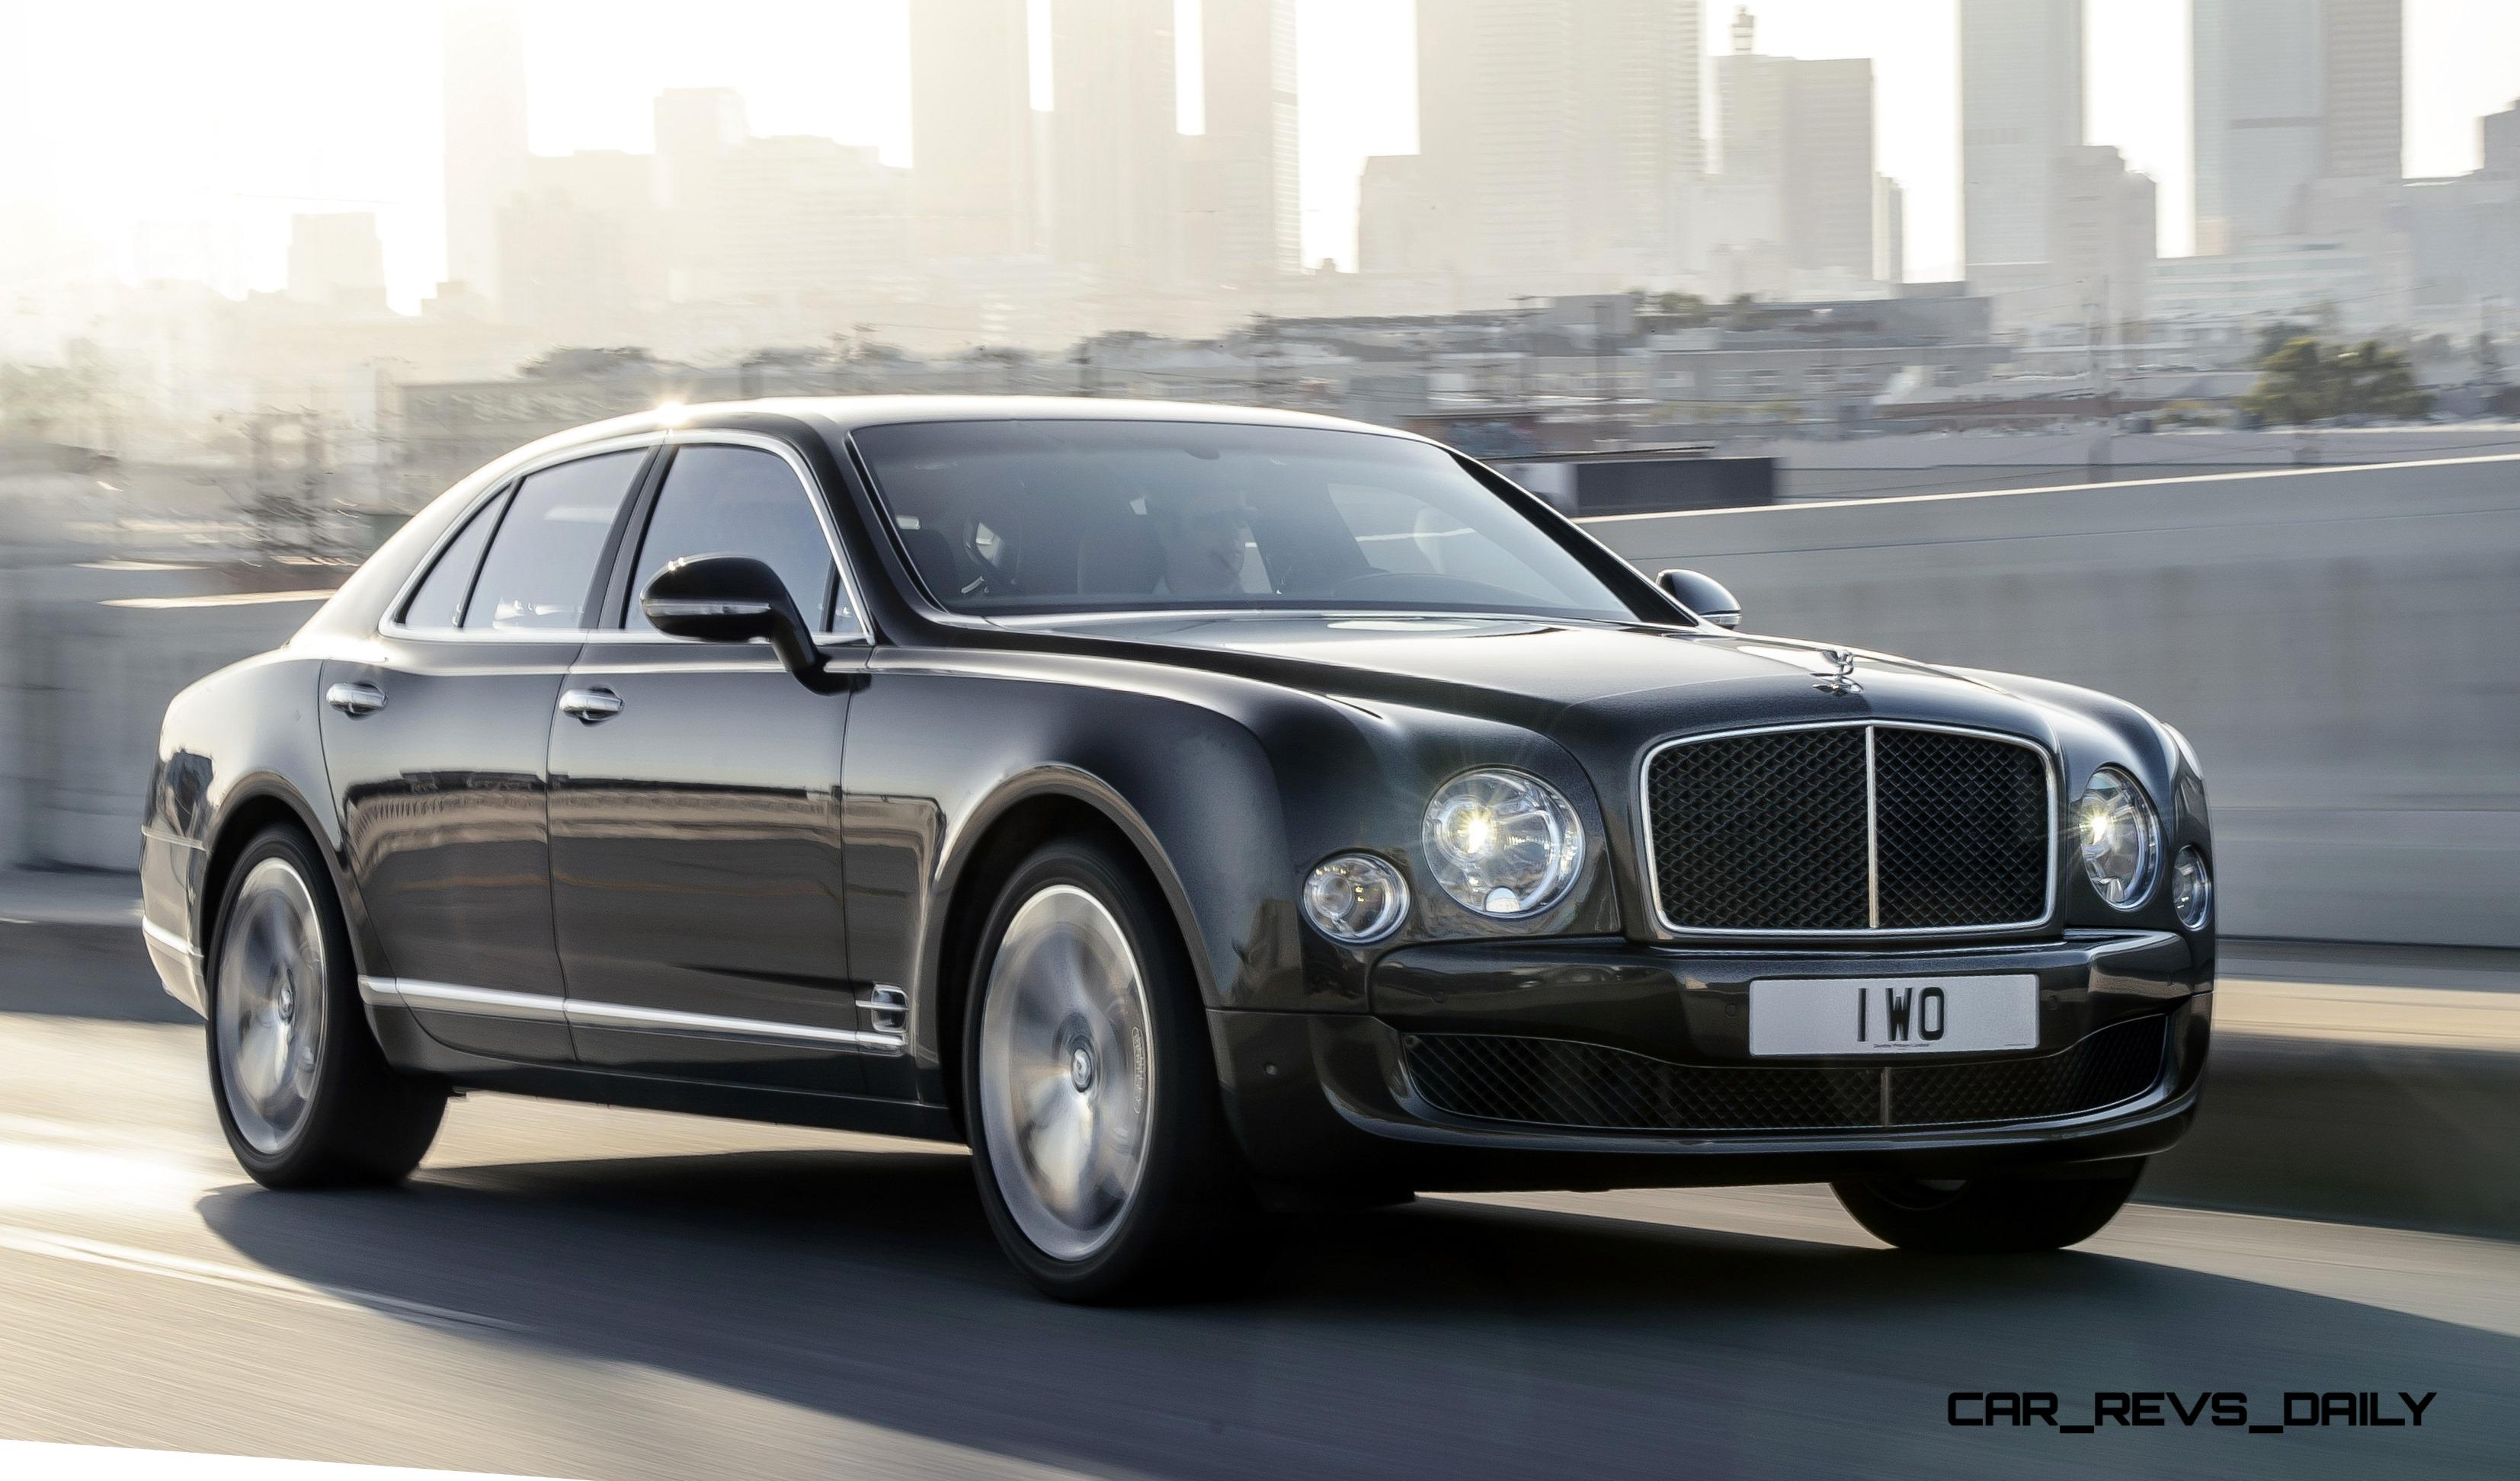 is limousine six bentley an sedan grand lux beast door news mulsanne side ultra profile price passenger